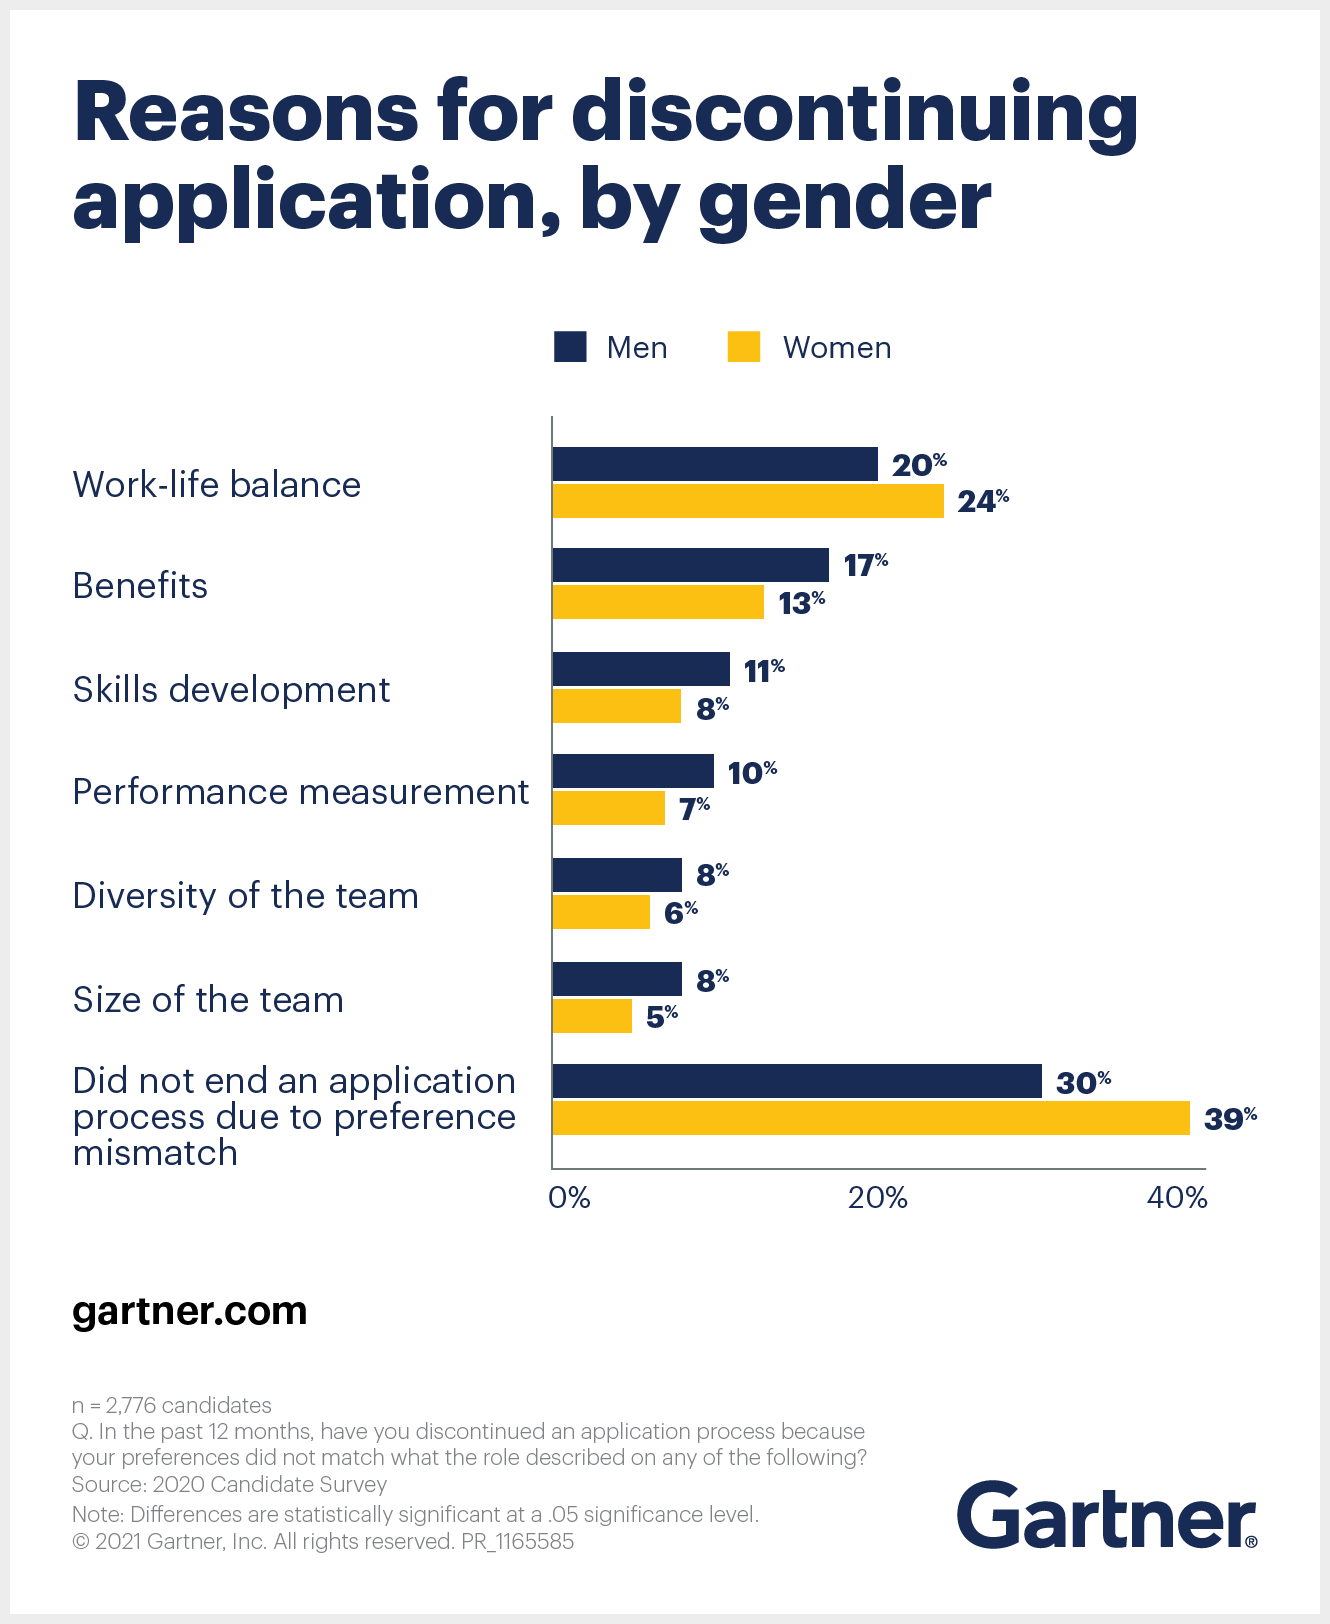 Gartner depicts the reasons for discontinuing application by gender.